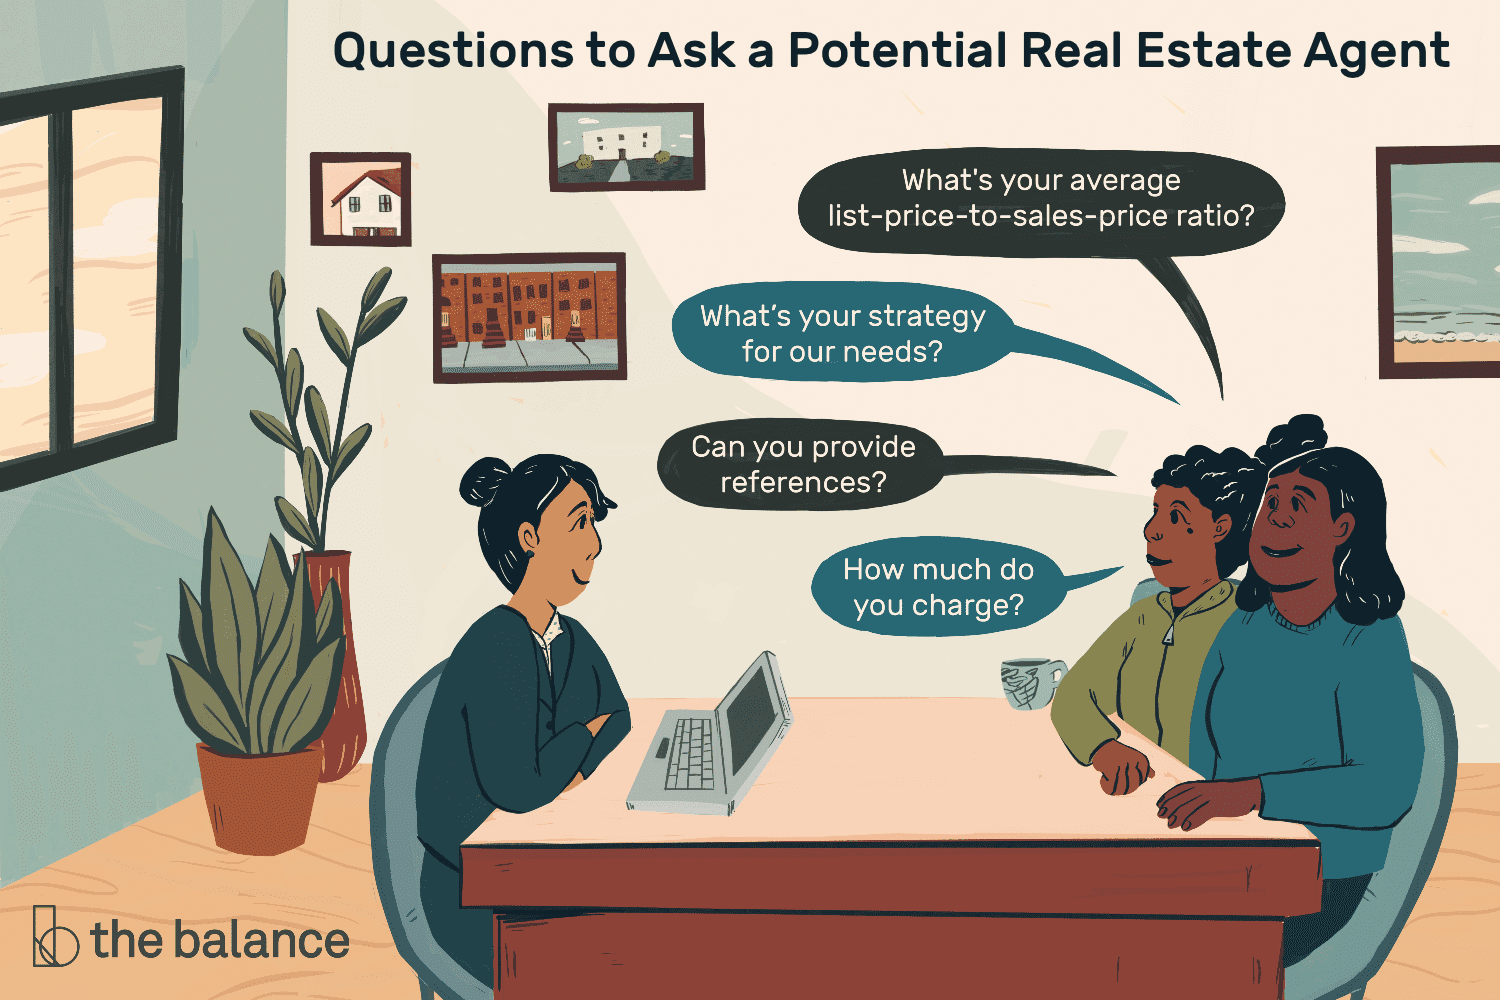 Tips for Interviewing a Real Estate Agent